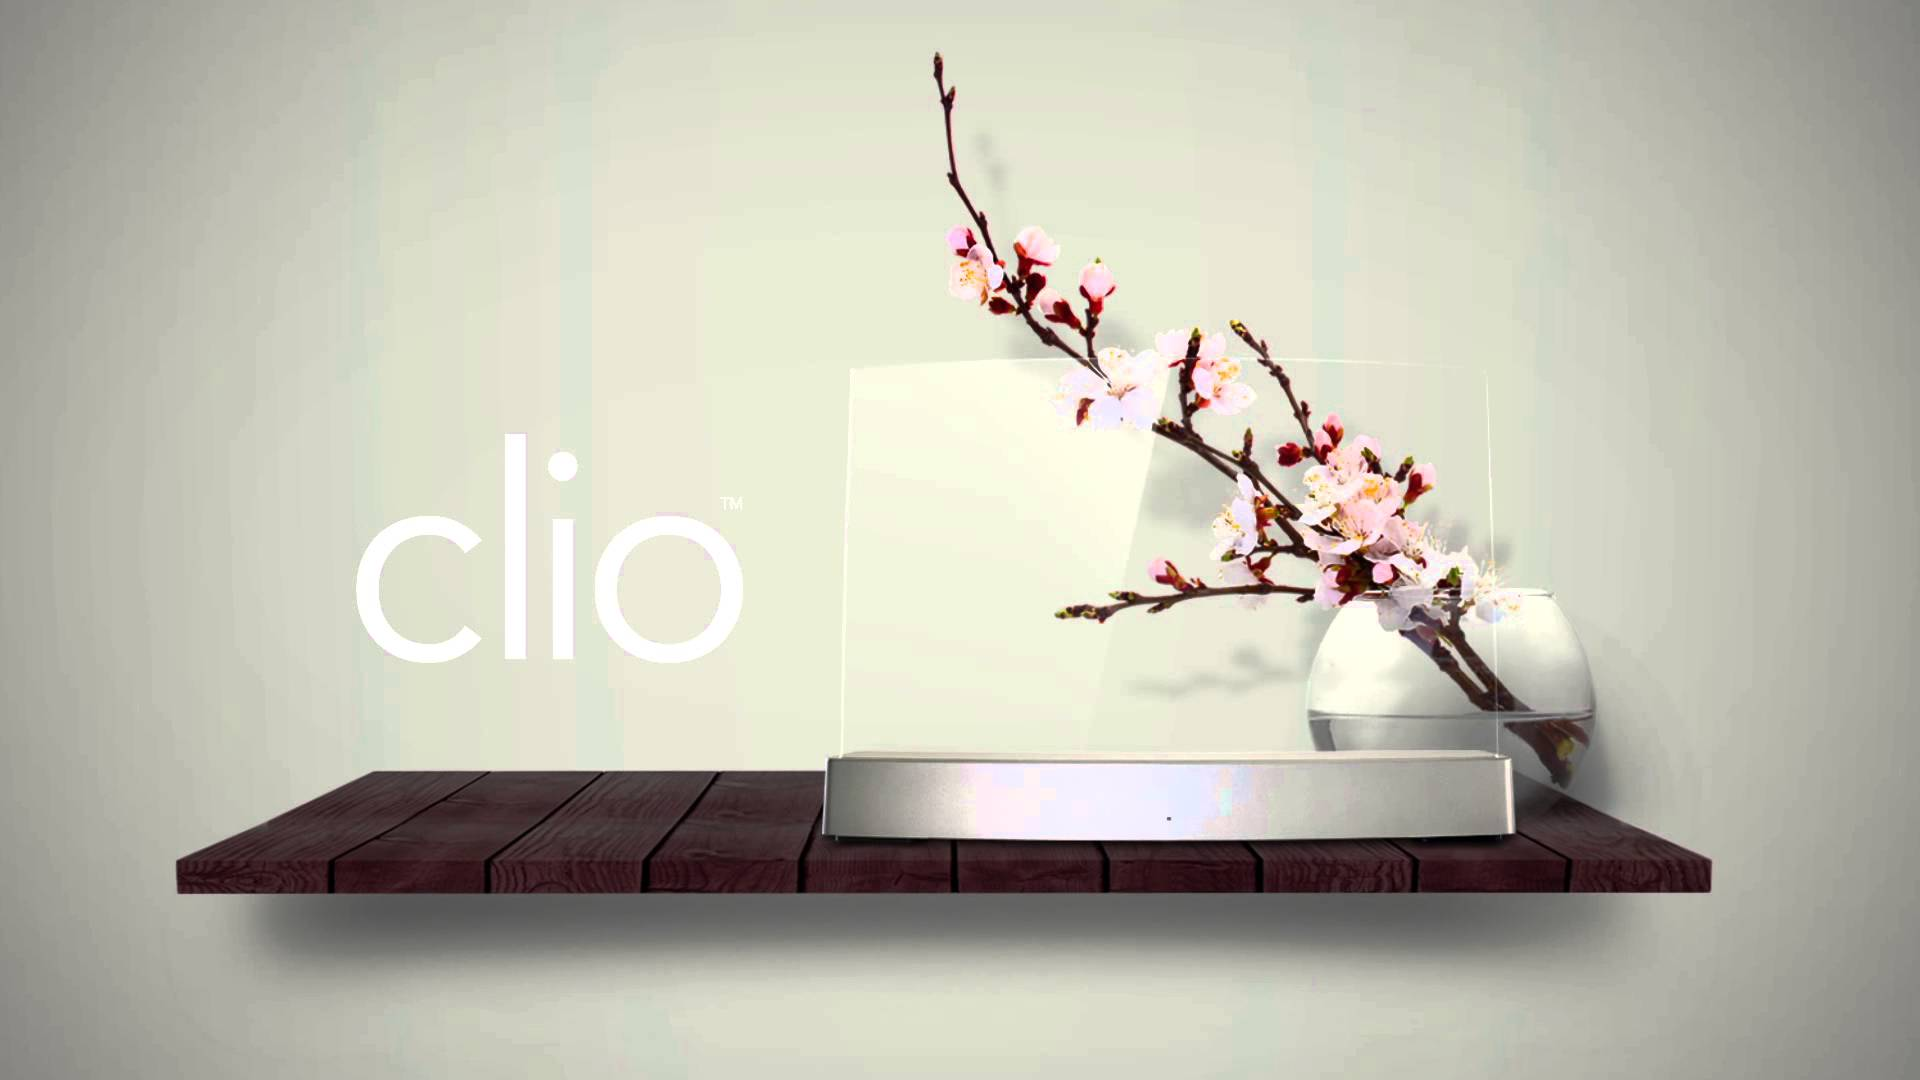 Clio - The First Invisible Speaker